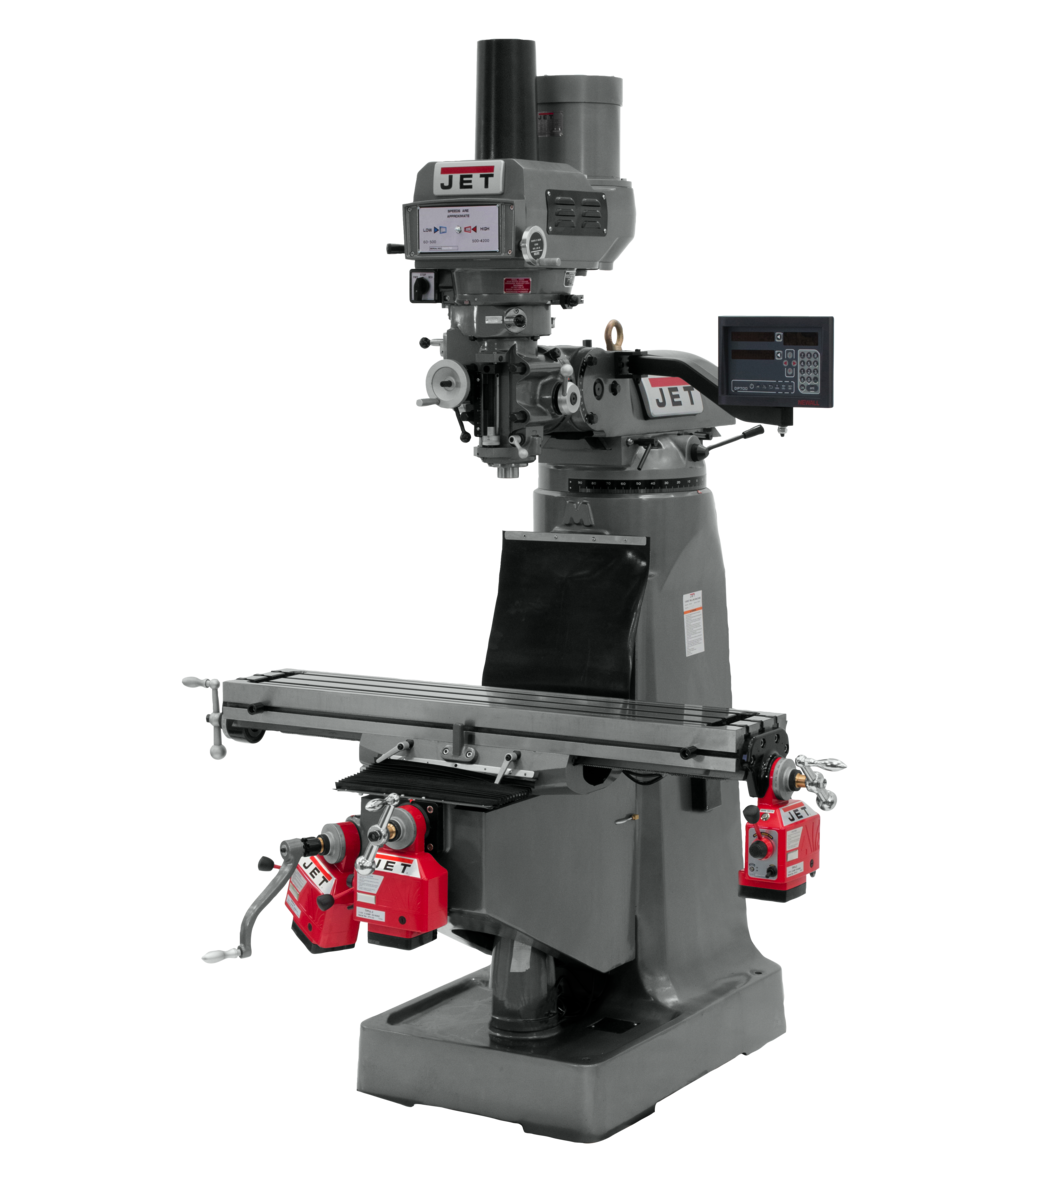 JTM-4VS Mill With 3-Axis Newall DP700 DRO (Quill) With X, Y and Z-Axis Powerfeeds and Power Draw Bar